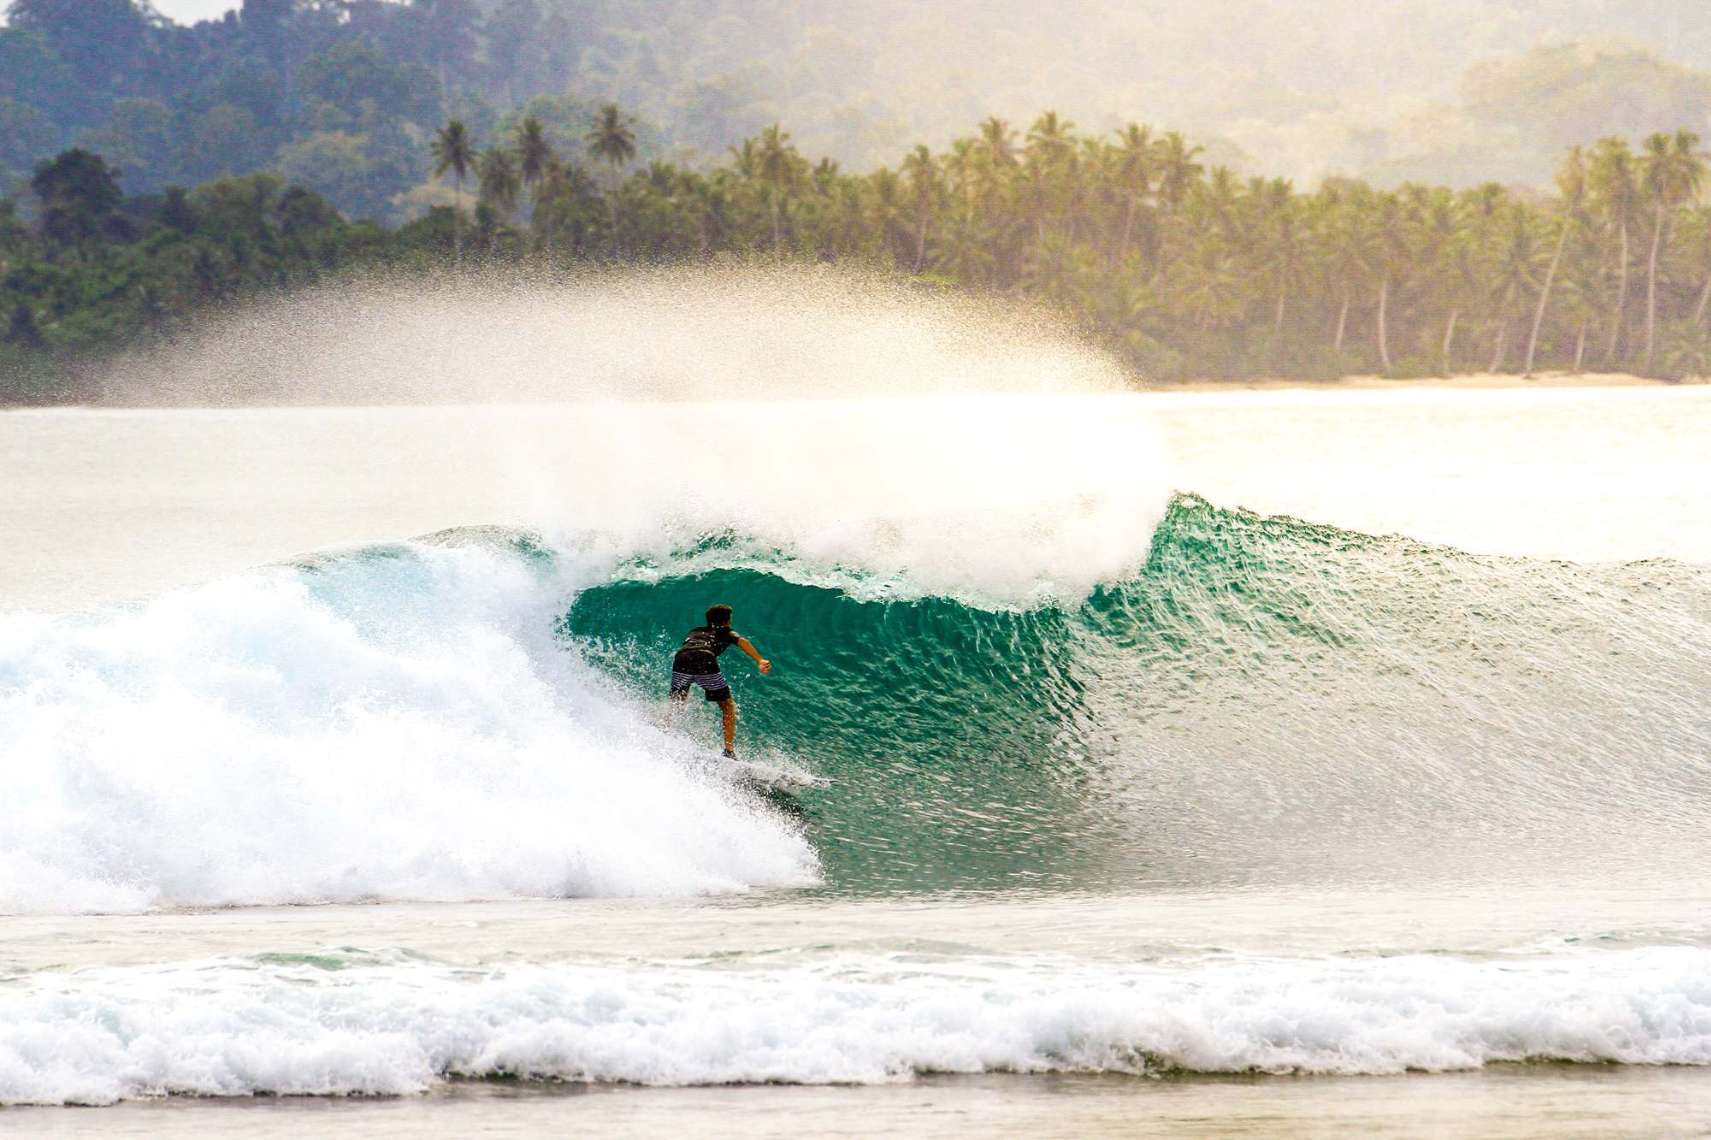 or the Mentawai Islands in Indonesia